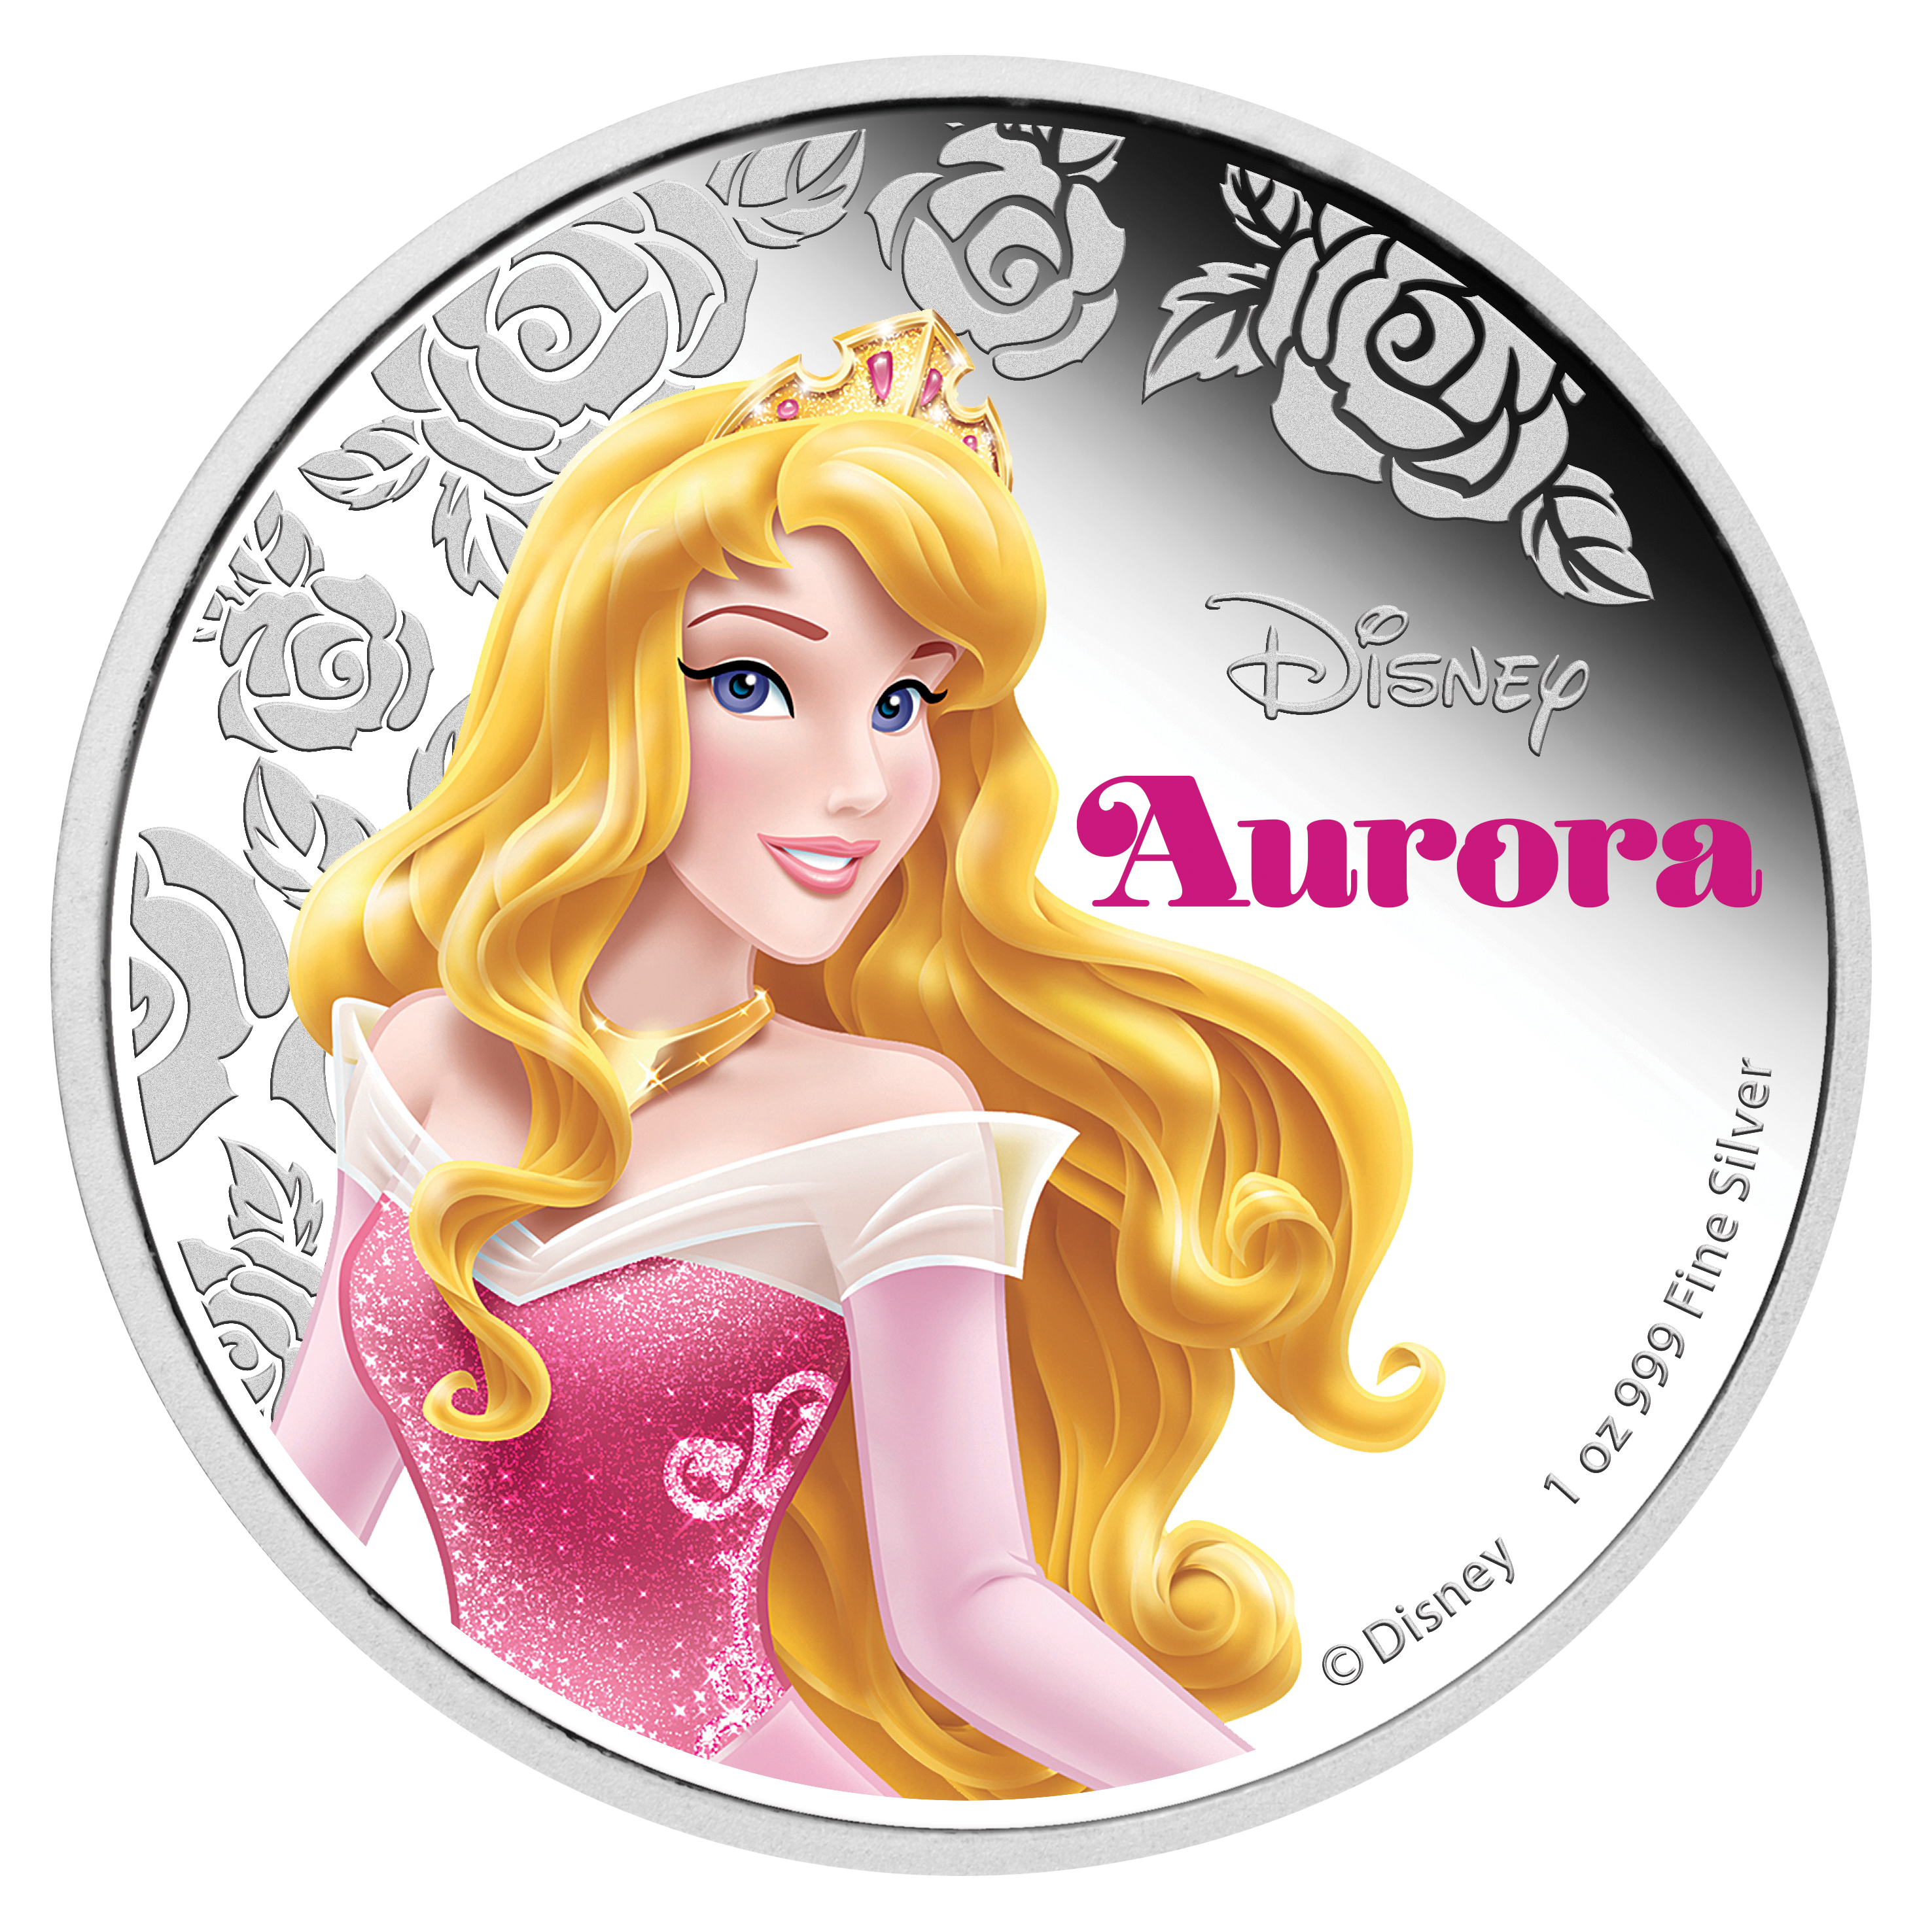 2015 Niue 1 oz Silver $2 Disney Princess Sleeping Beauty Aurora